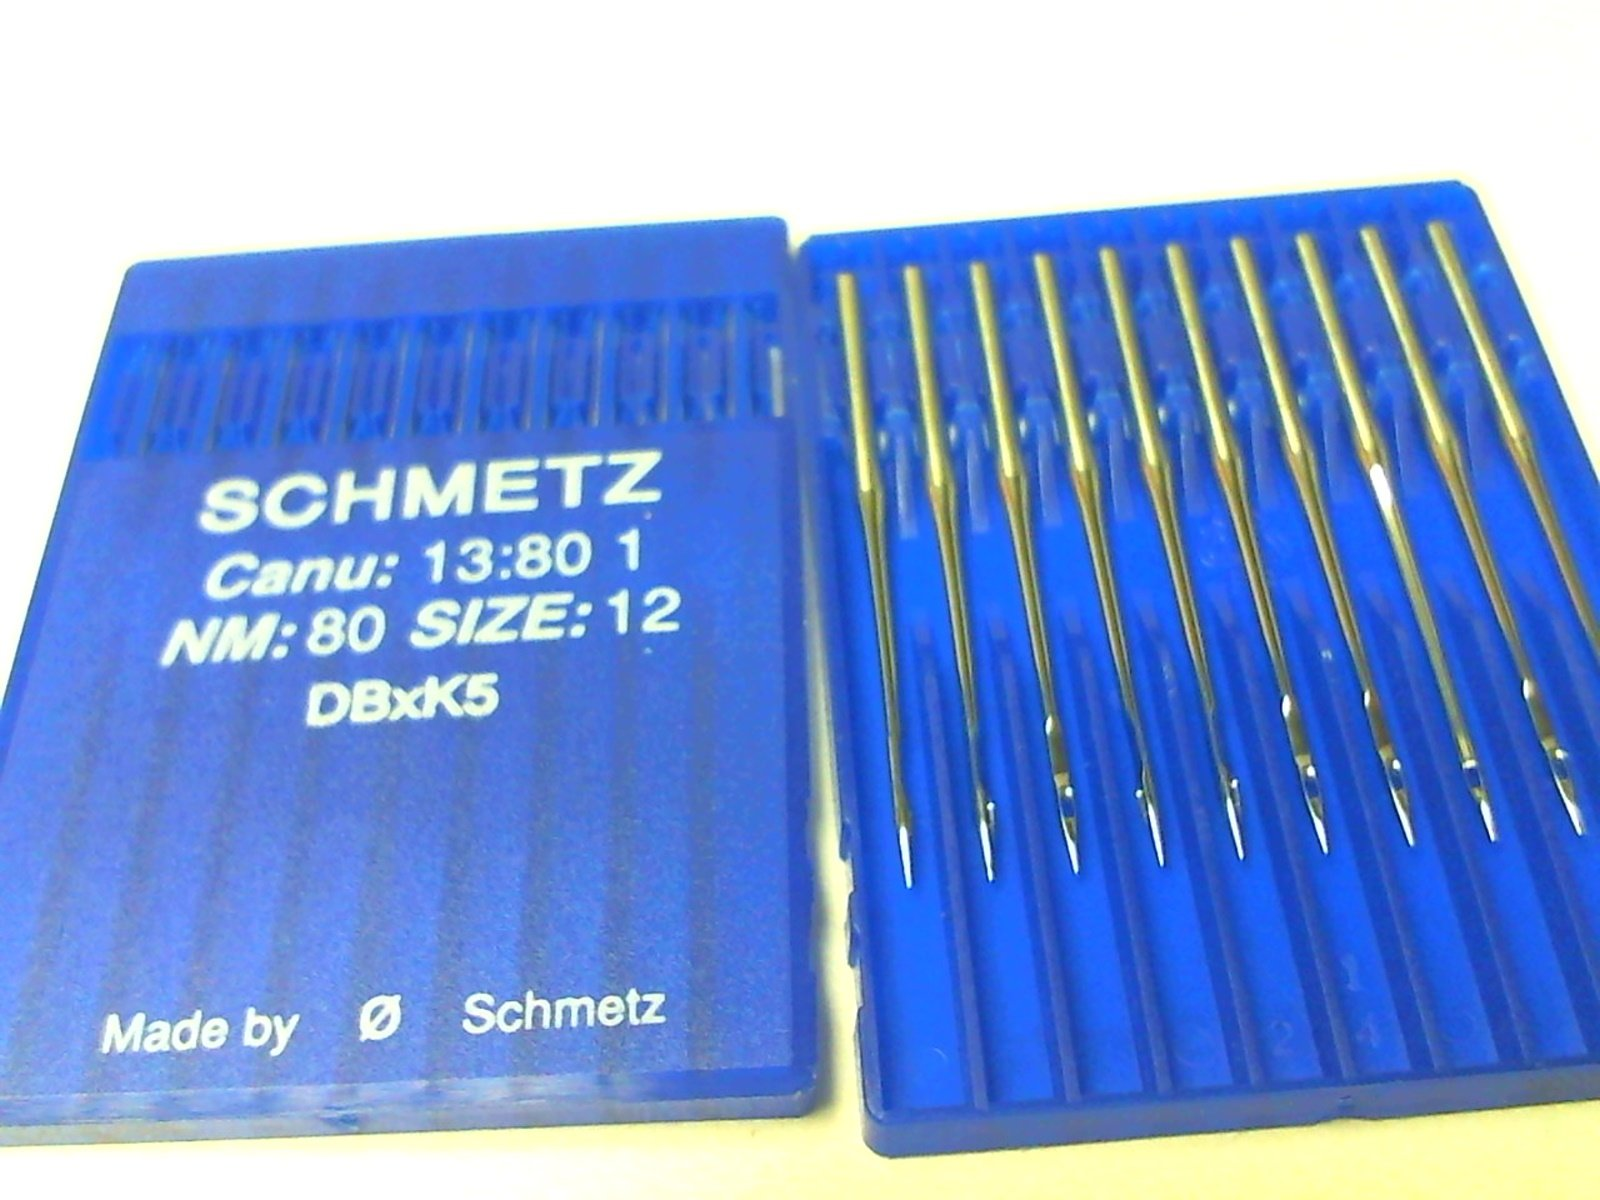 DBXK5 #80/12INDUSTRIAL NEEDLES JANOME MB4 HAPPY PACKAGE OF 10  SCHMETZ